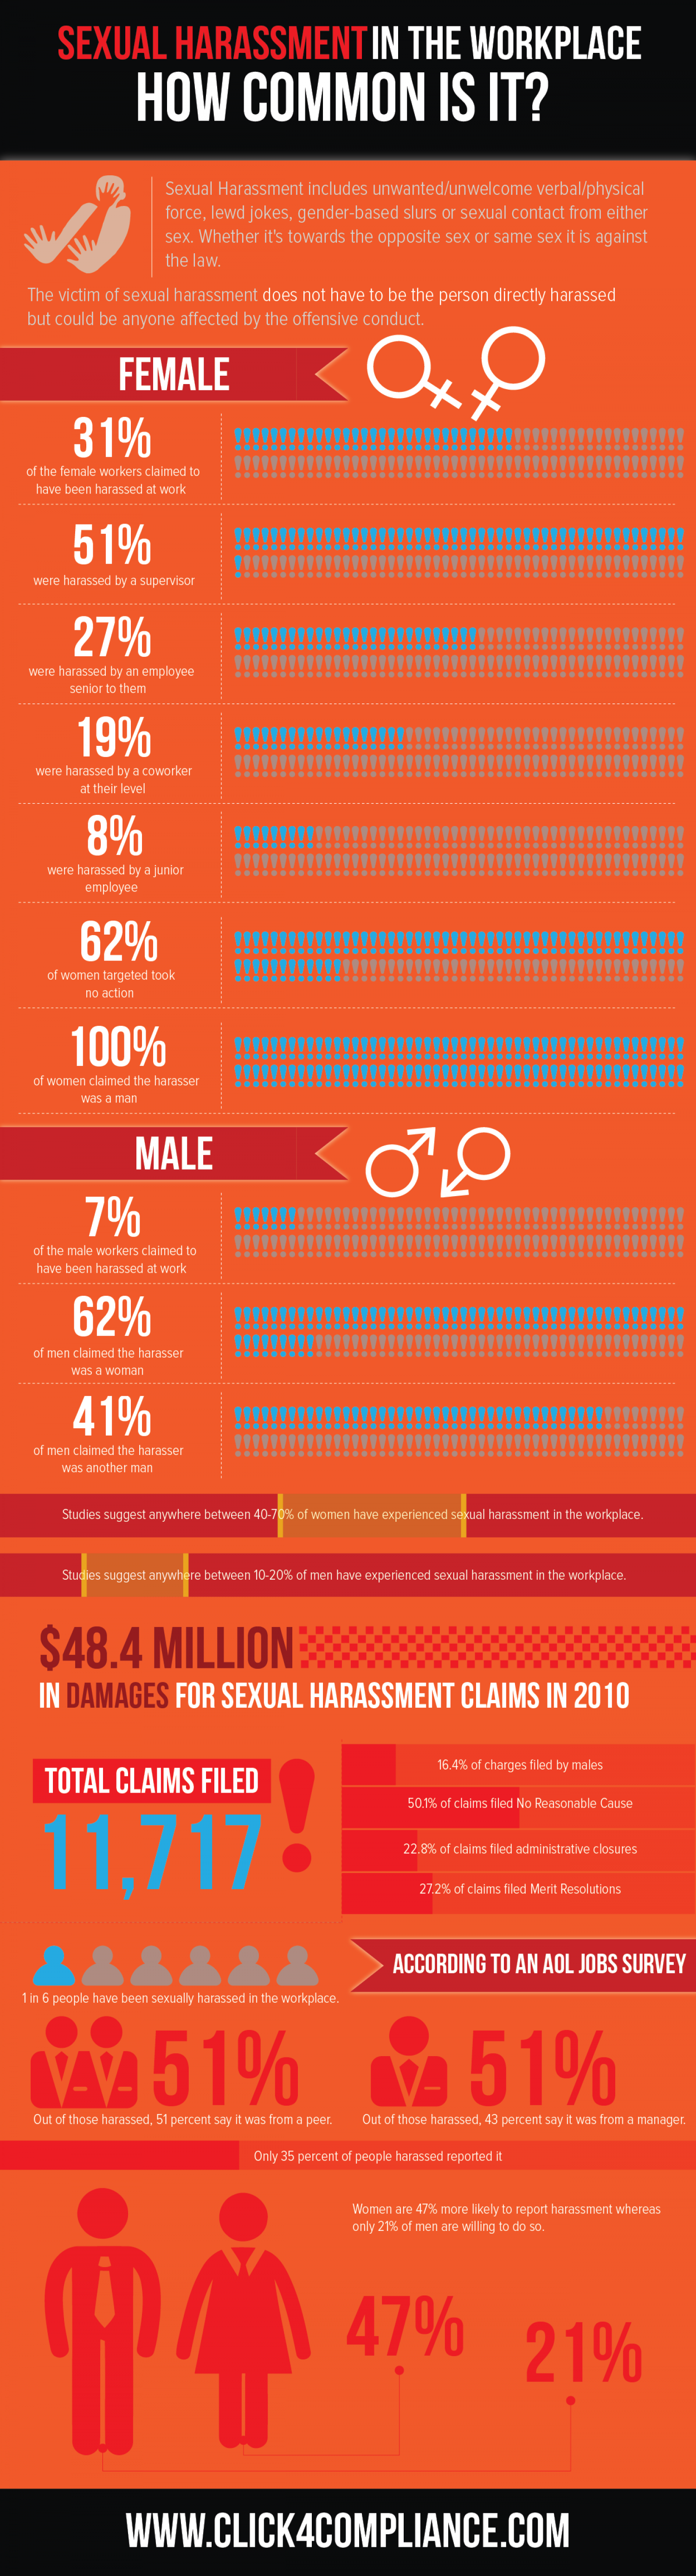 Sexual Harassment in the Workplace: How Common is it?  Infographic